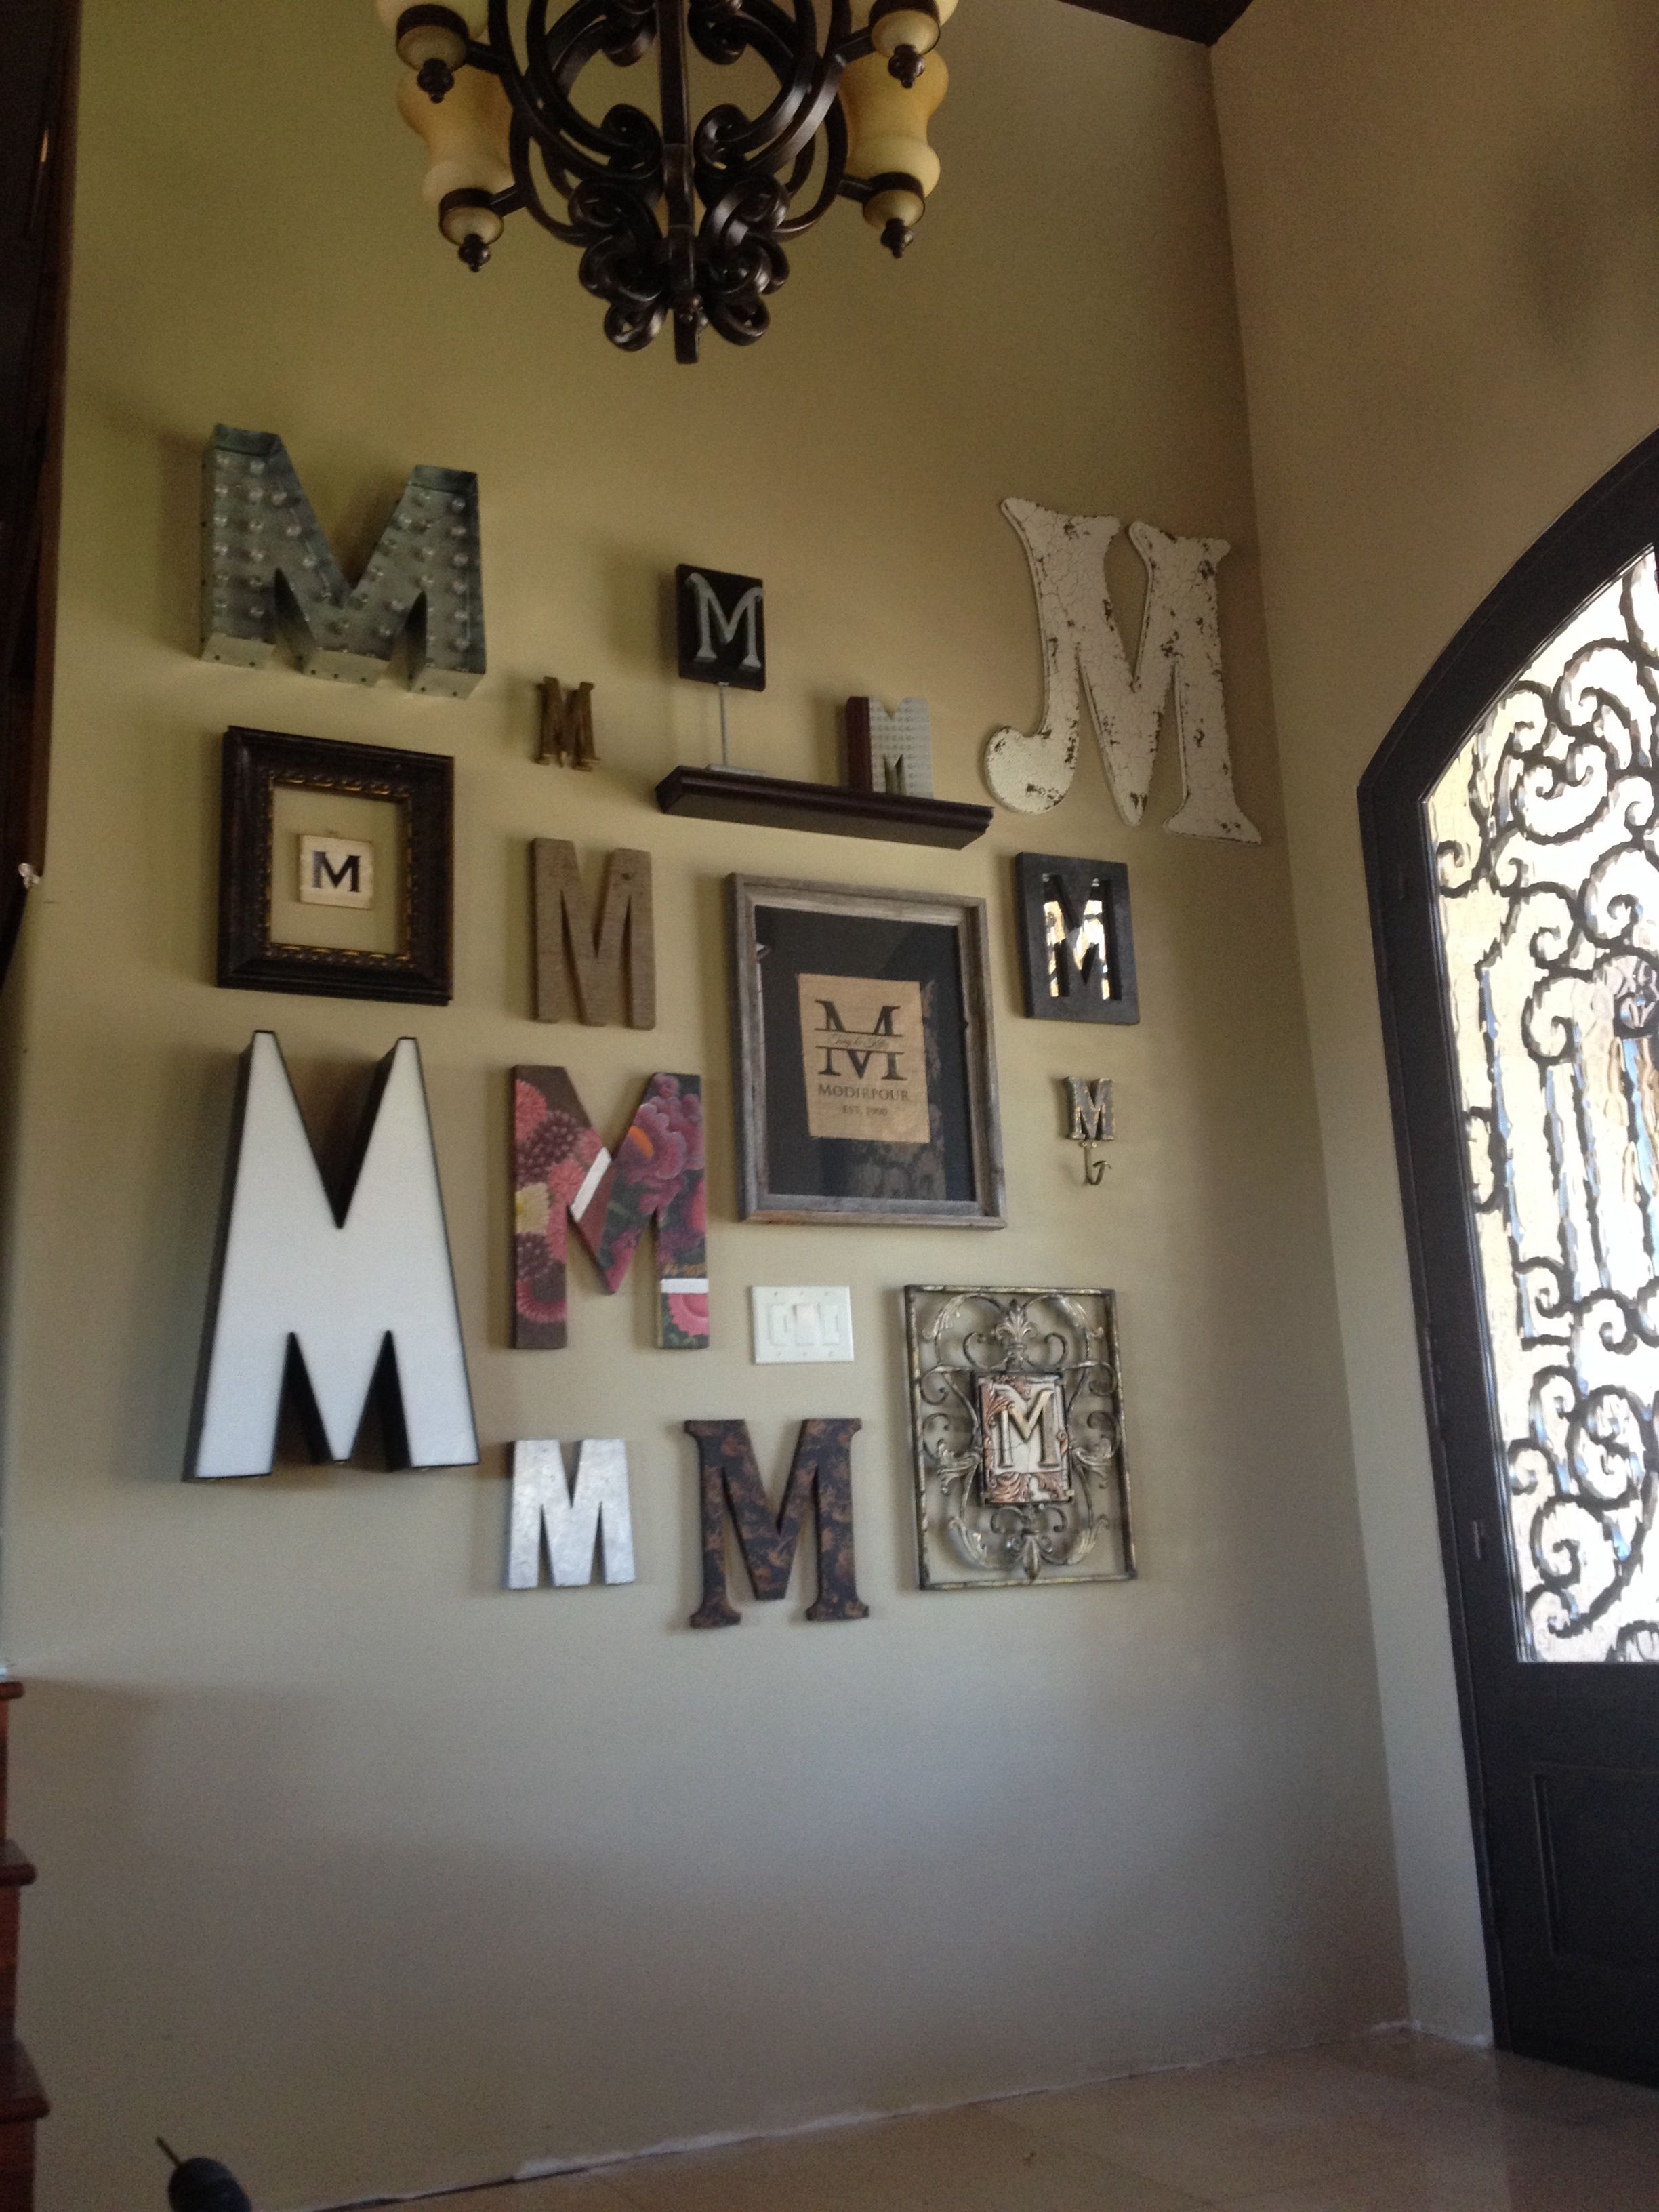 Home Interior Wall Decorations Monogram Wall For The Home Home Decor Letter Wall